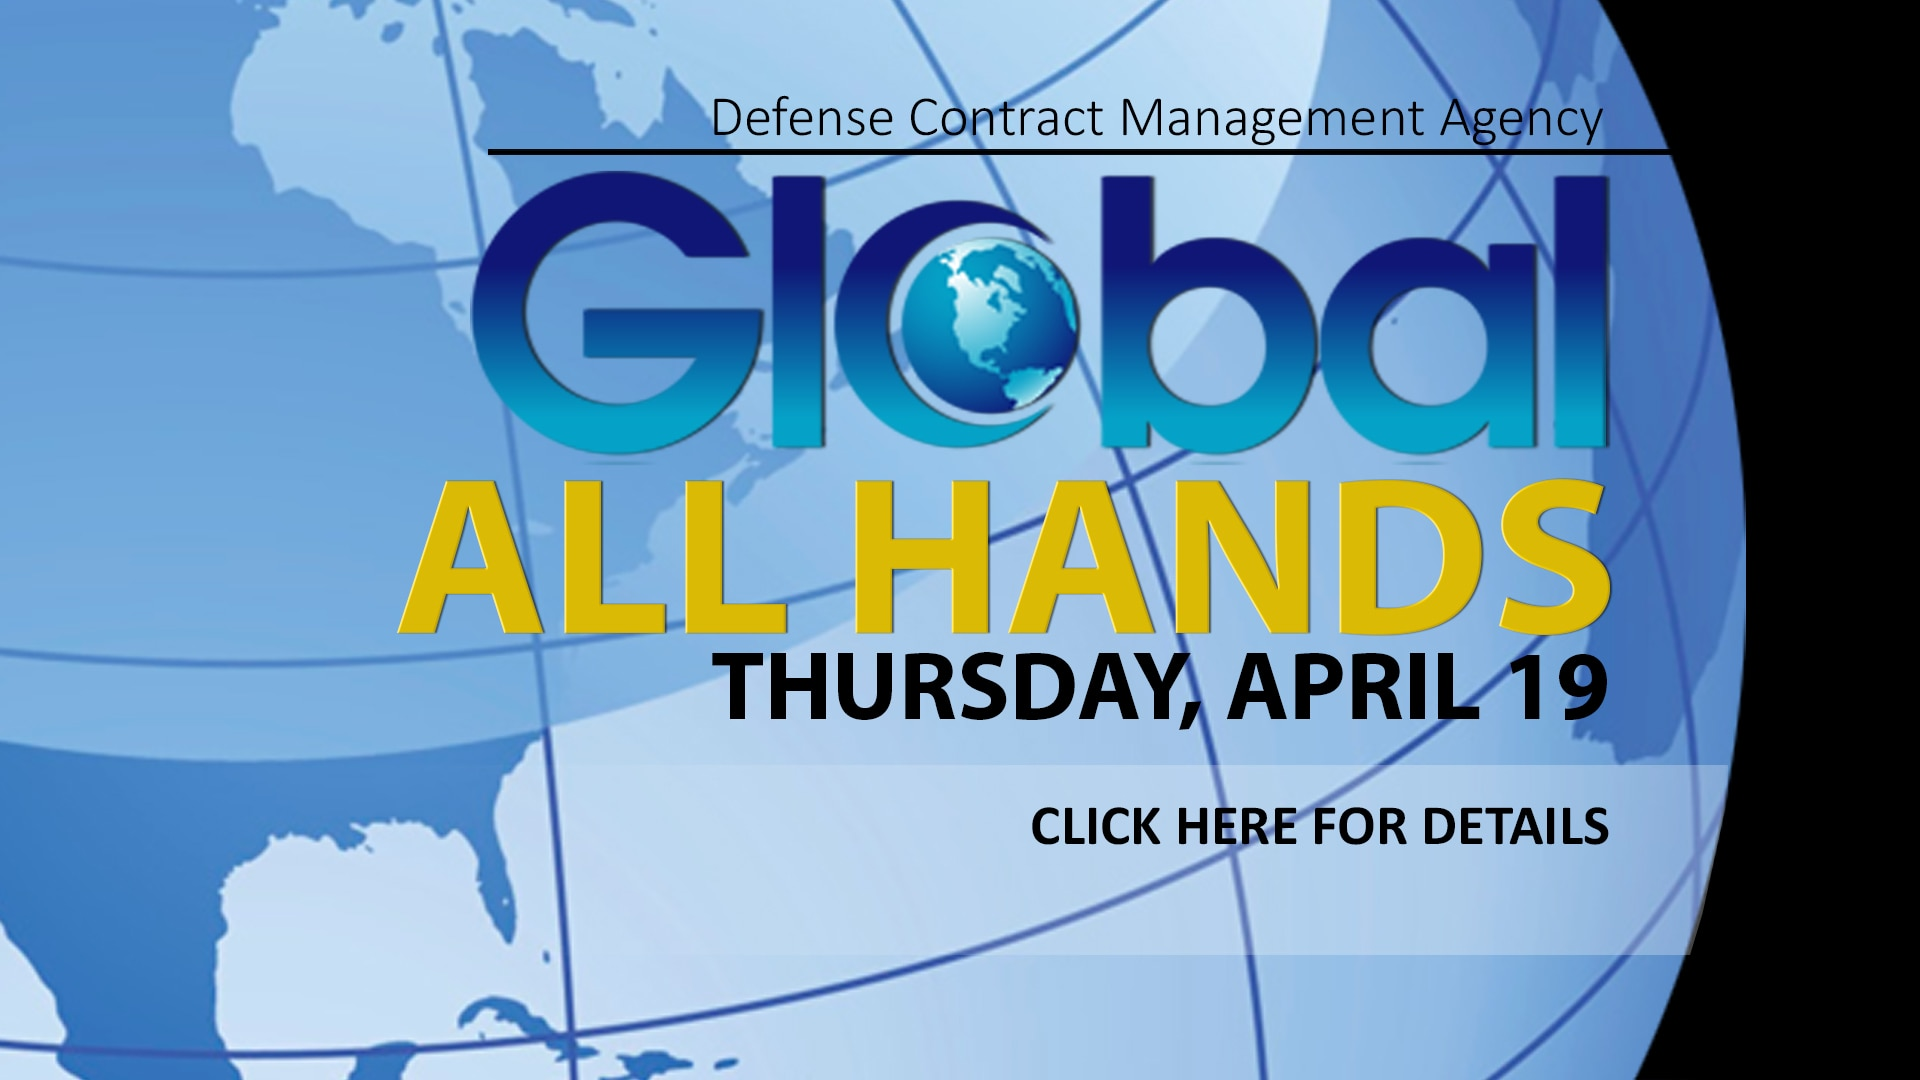 Navy Vice Adm. David Lewis, Defense Contract Management Agency director, will host a Global All Hands for DCMA staff at 1 p.m. Eastern, Thursday, April 19.